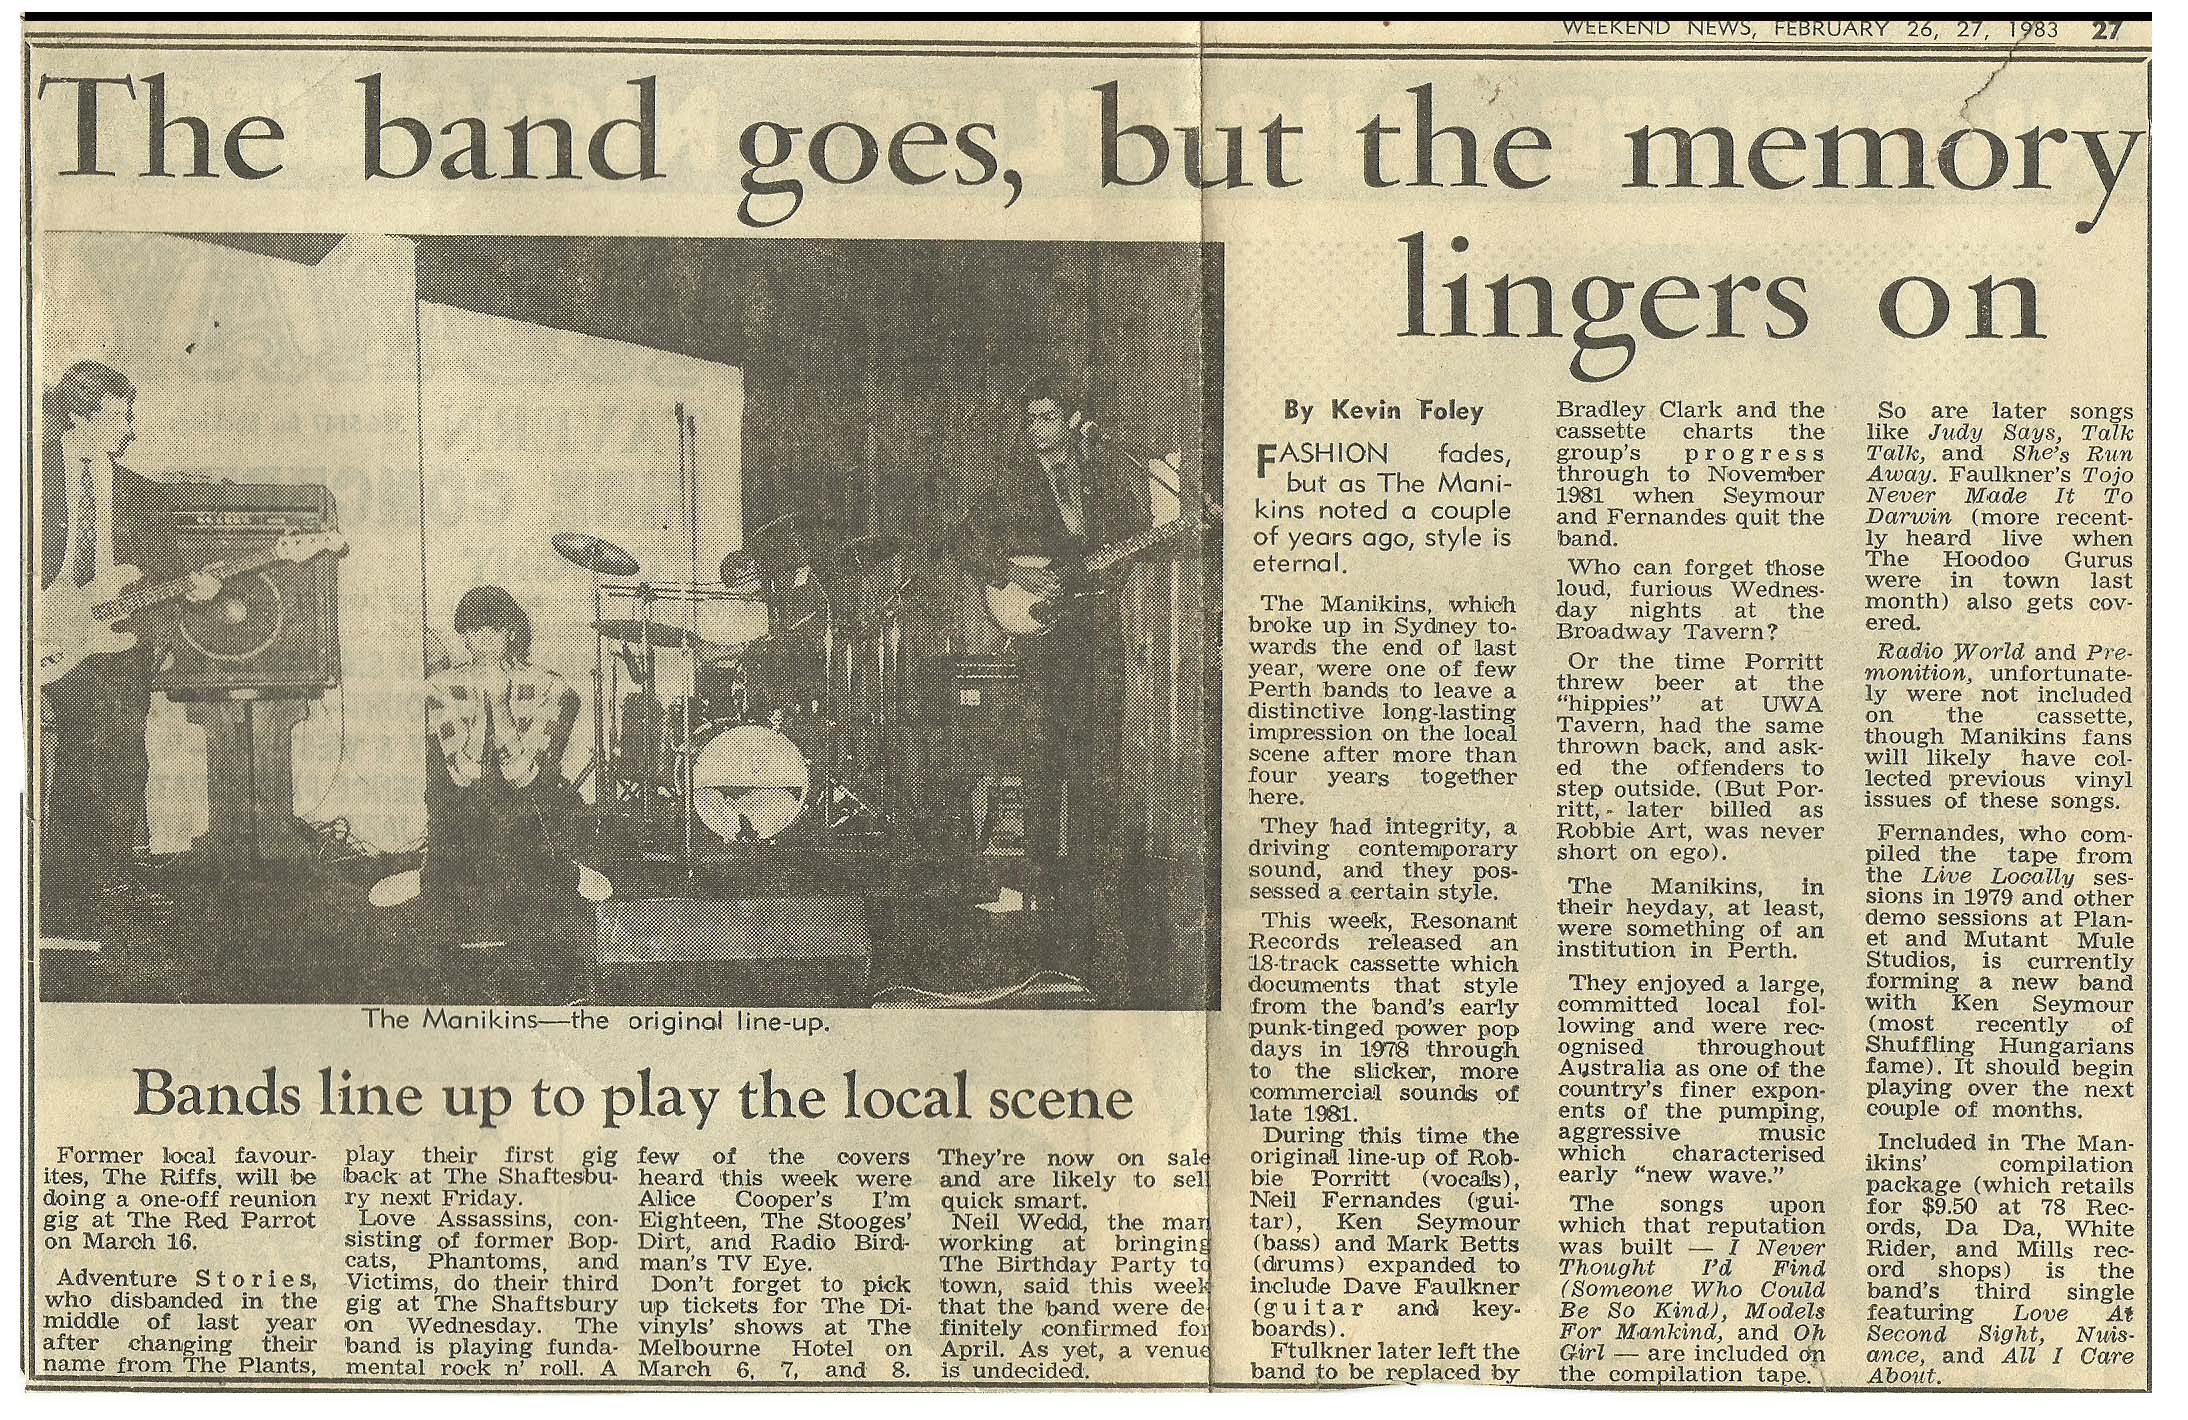 Manikins breakup newspaper article 1983